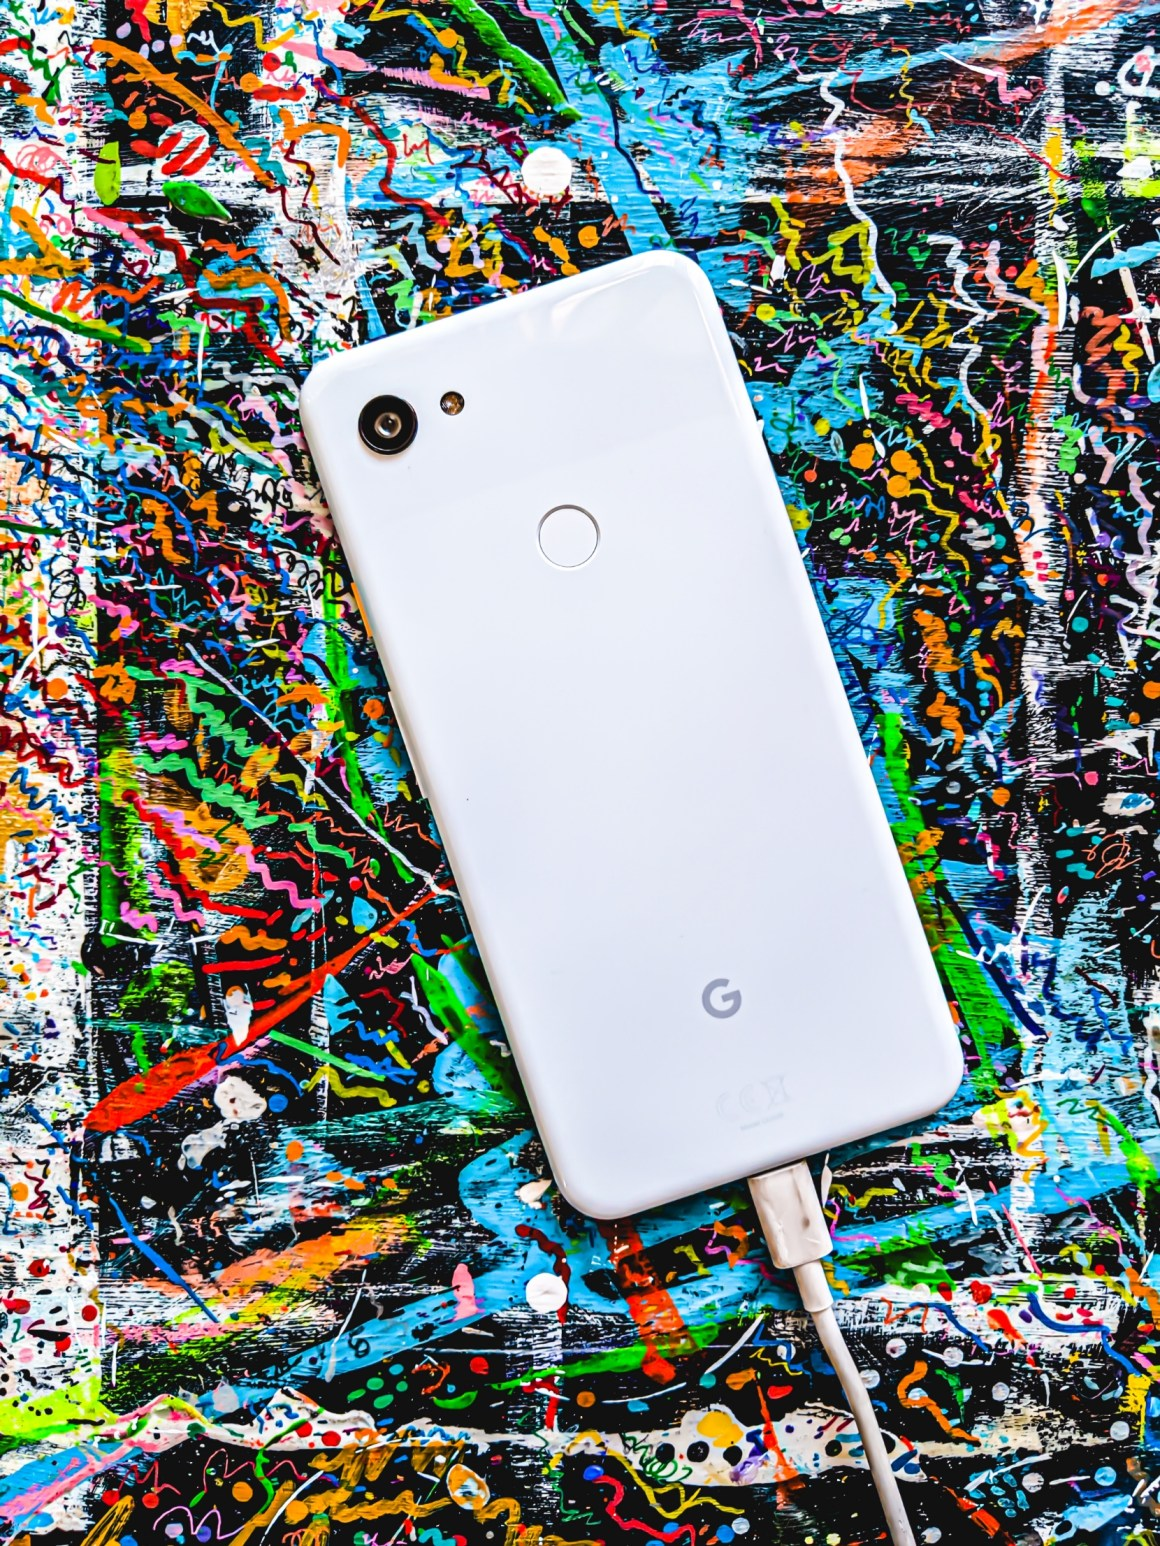 Pixel3aXL, Pixel Giveaway, #NAINAxPixel3aXL, #NAINAxGOOGLE, #TeamPixel, Google India, Pixel Camera Phone, Pixel Smartphone, Pixel 3a, Naina.co, Naina Redhu, EyesForTechnology, Phone Giveaway, Smartphone Giveaway, Google Pixel, Team Pixel, Professional Photographer, Experience Collector, Professional Blogger, Visual Storyteller, Photographer, Lifestyle Photographer, Lifestyle Blogger, Luxury Photographer, Luxury Blogger, India